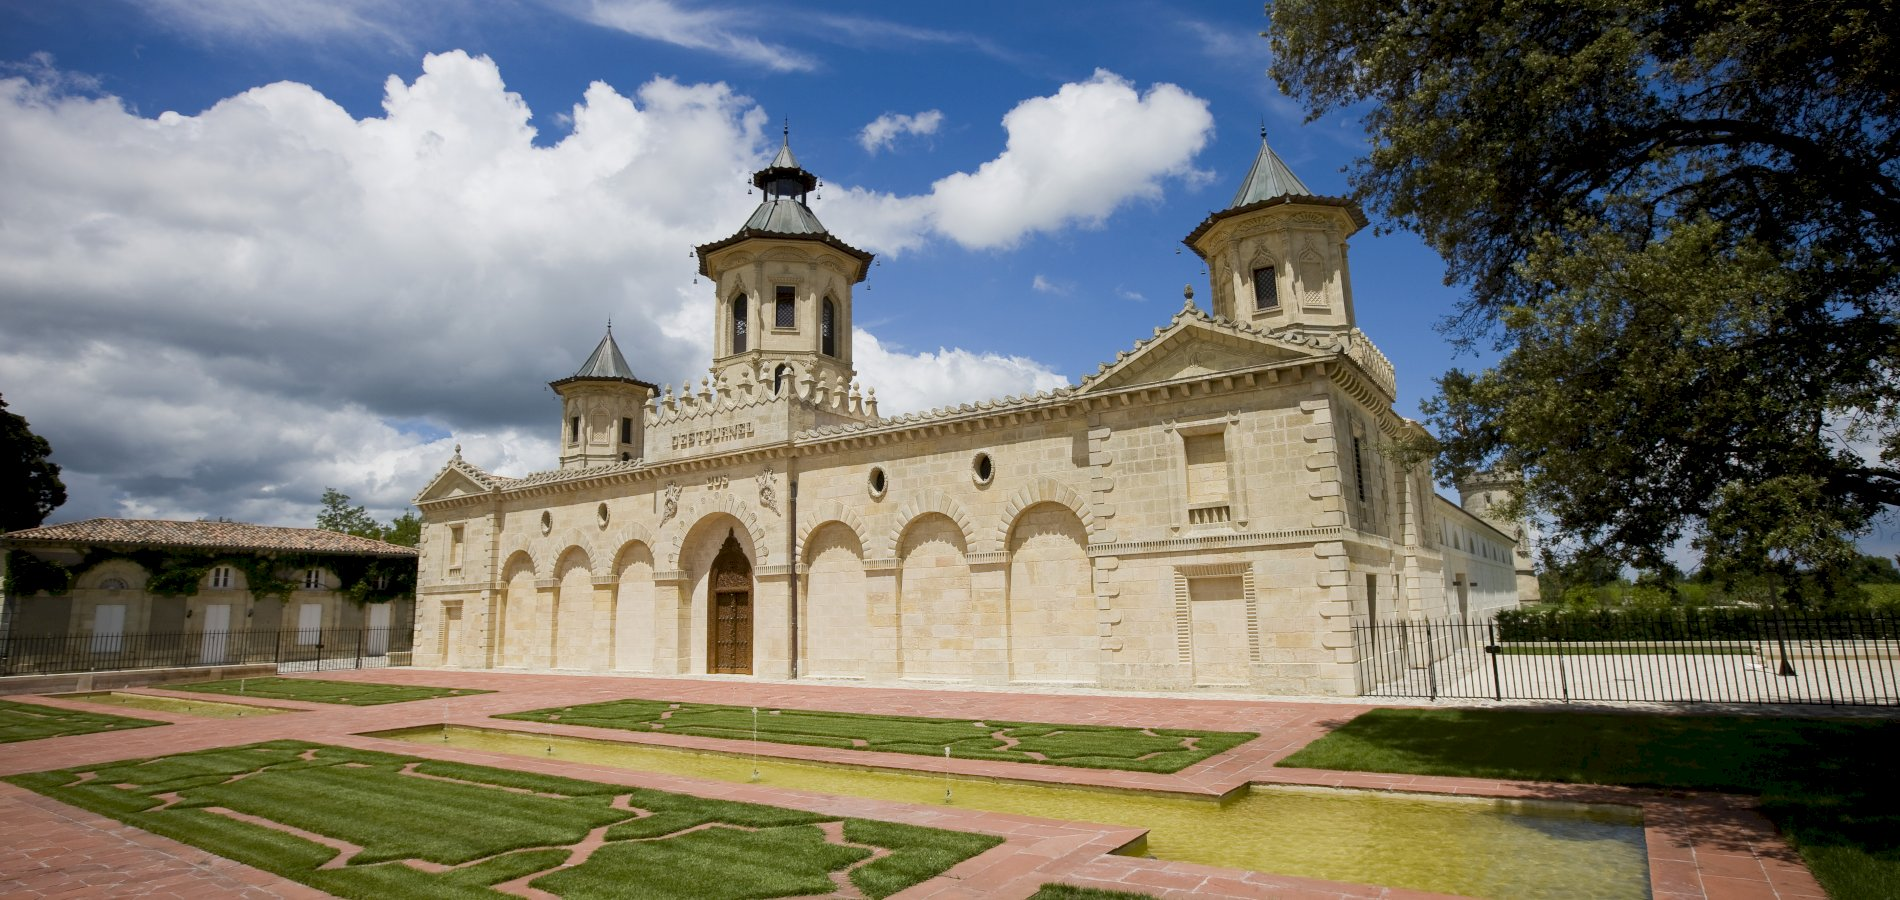 Ophorus Tours - From Bordeaux City to Le Verdon Cruise Port Small Group Private Medoc Wine Tour